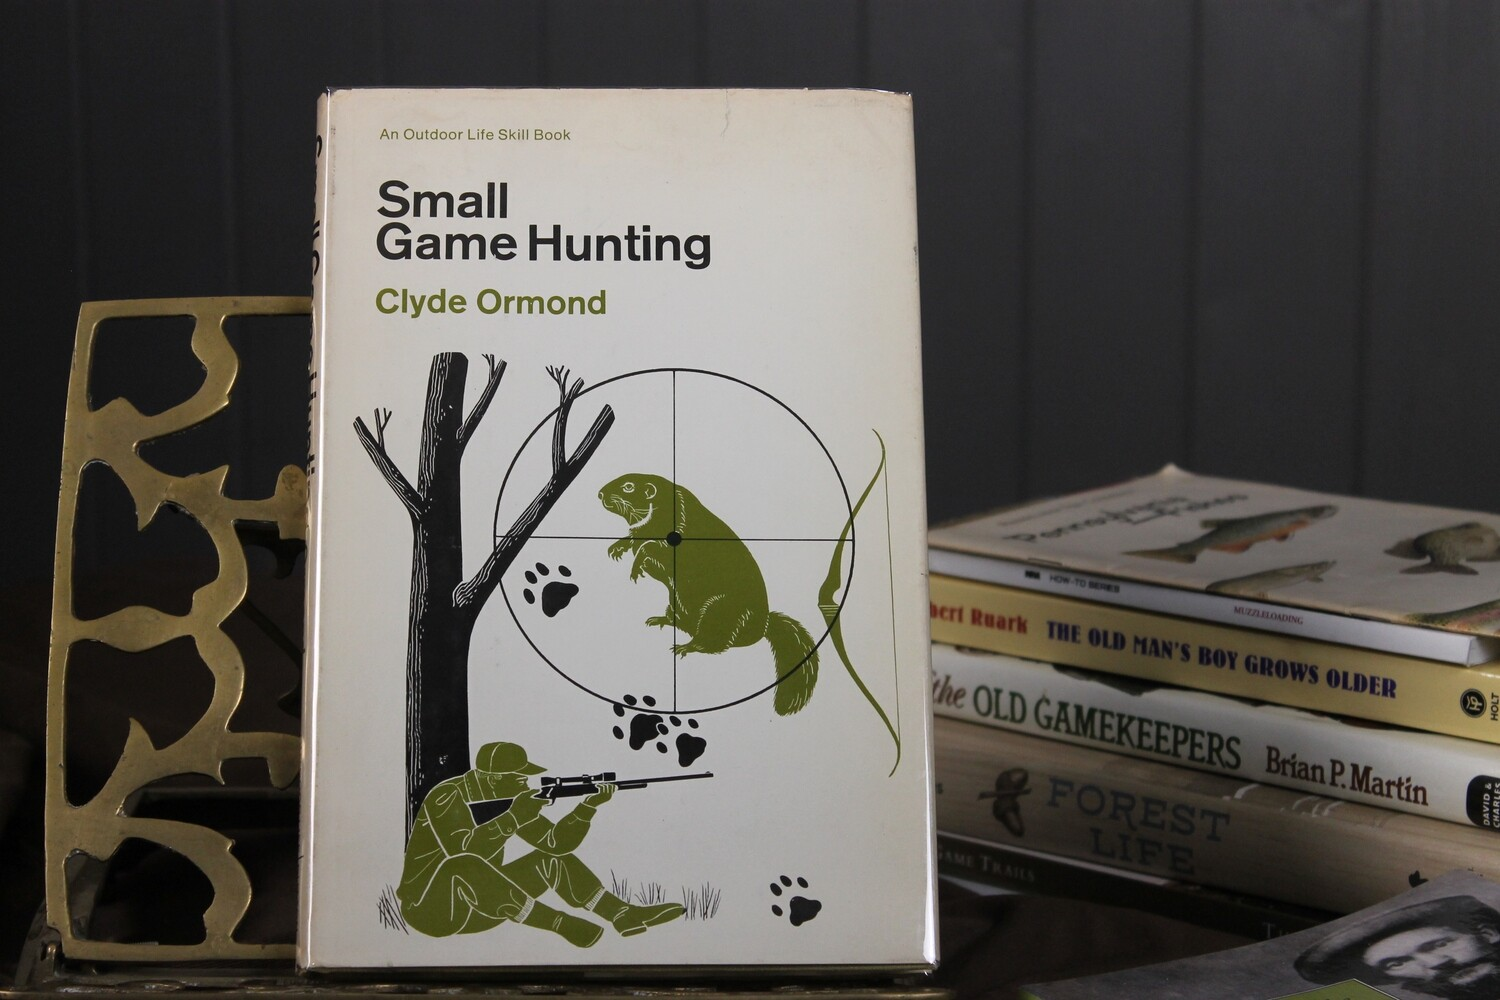 Small-Game Hunting by Clyde Ormond